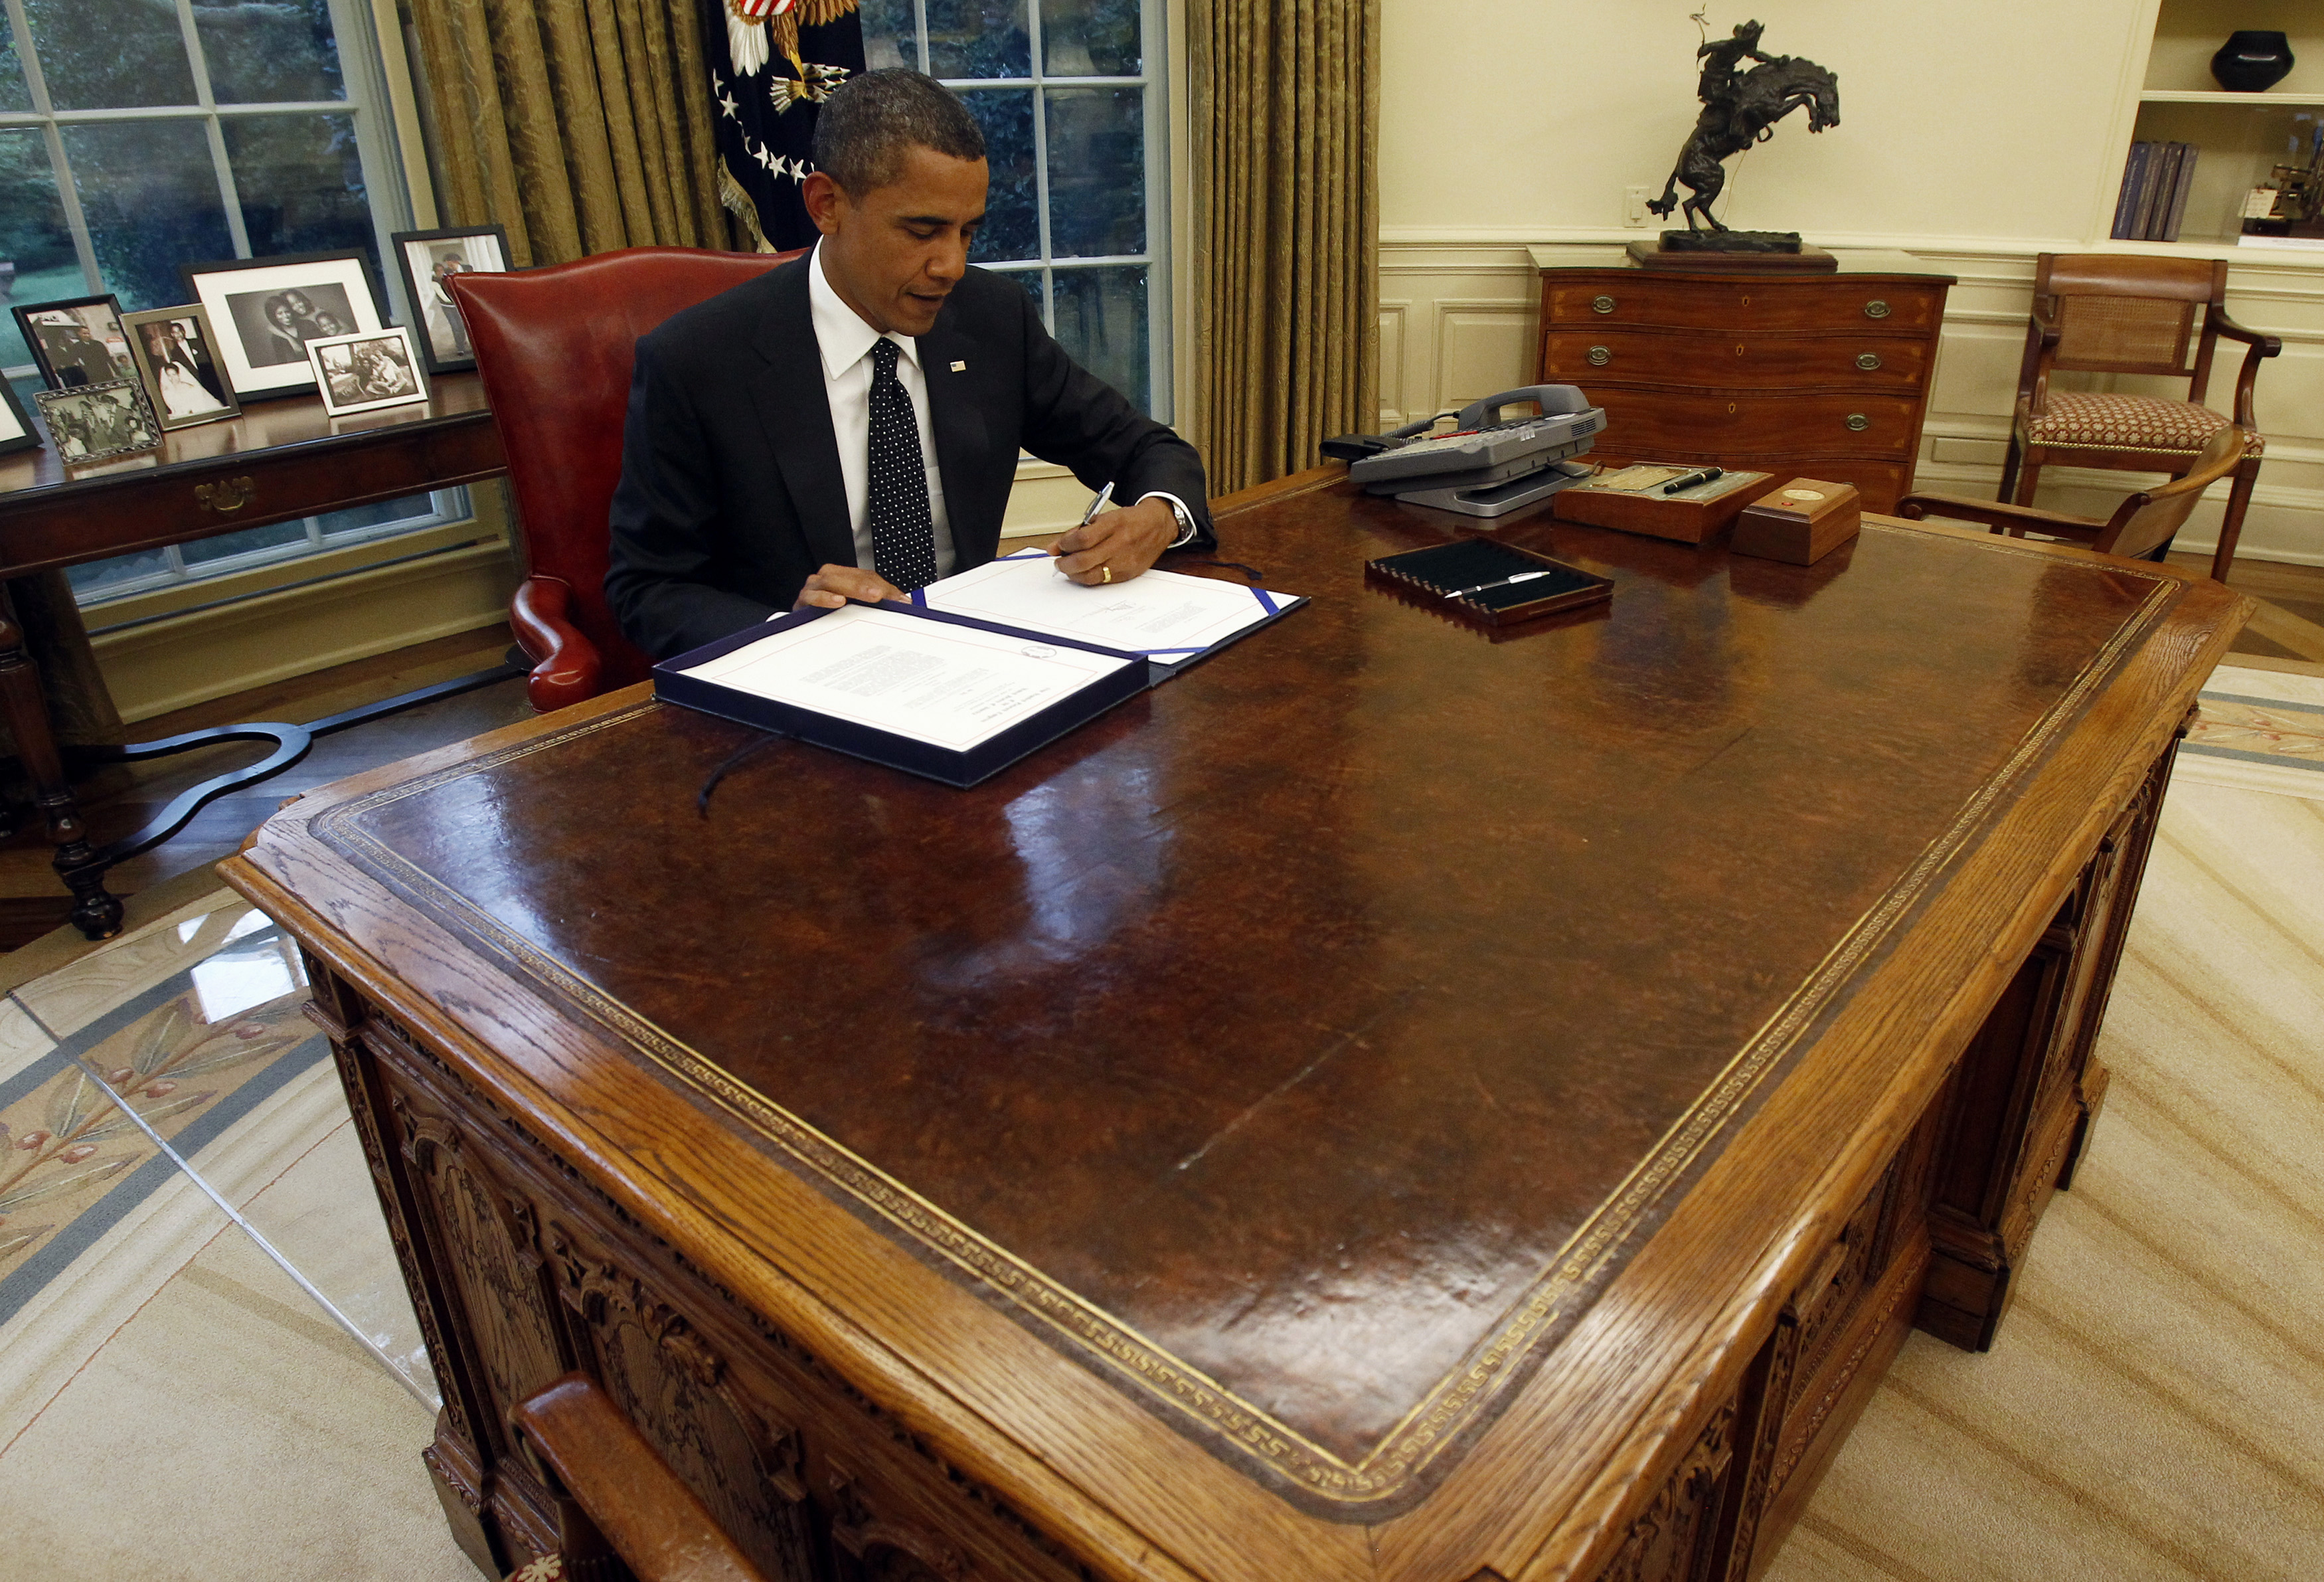 President Barack Obama At His Desk In The Oval Office At The White House The World From Prx,Vital Proteins Collagen Powder Nutrition Facts